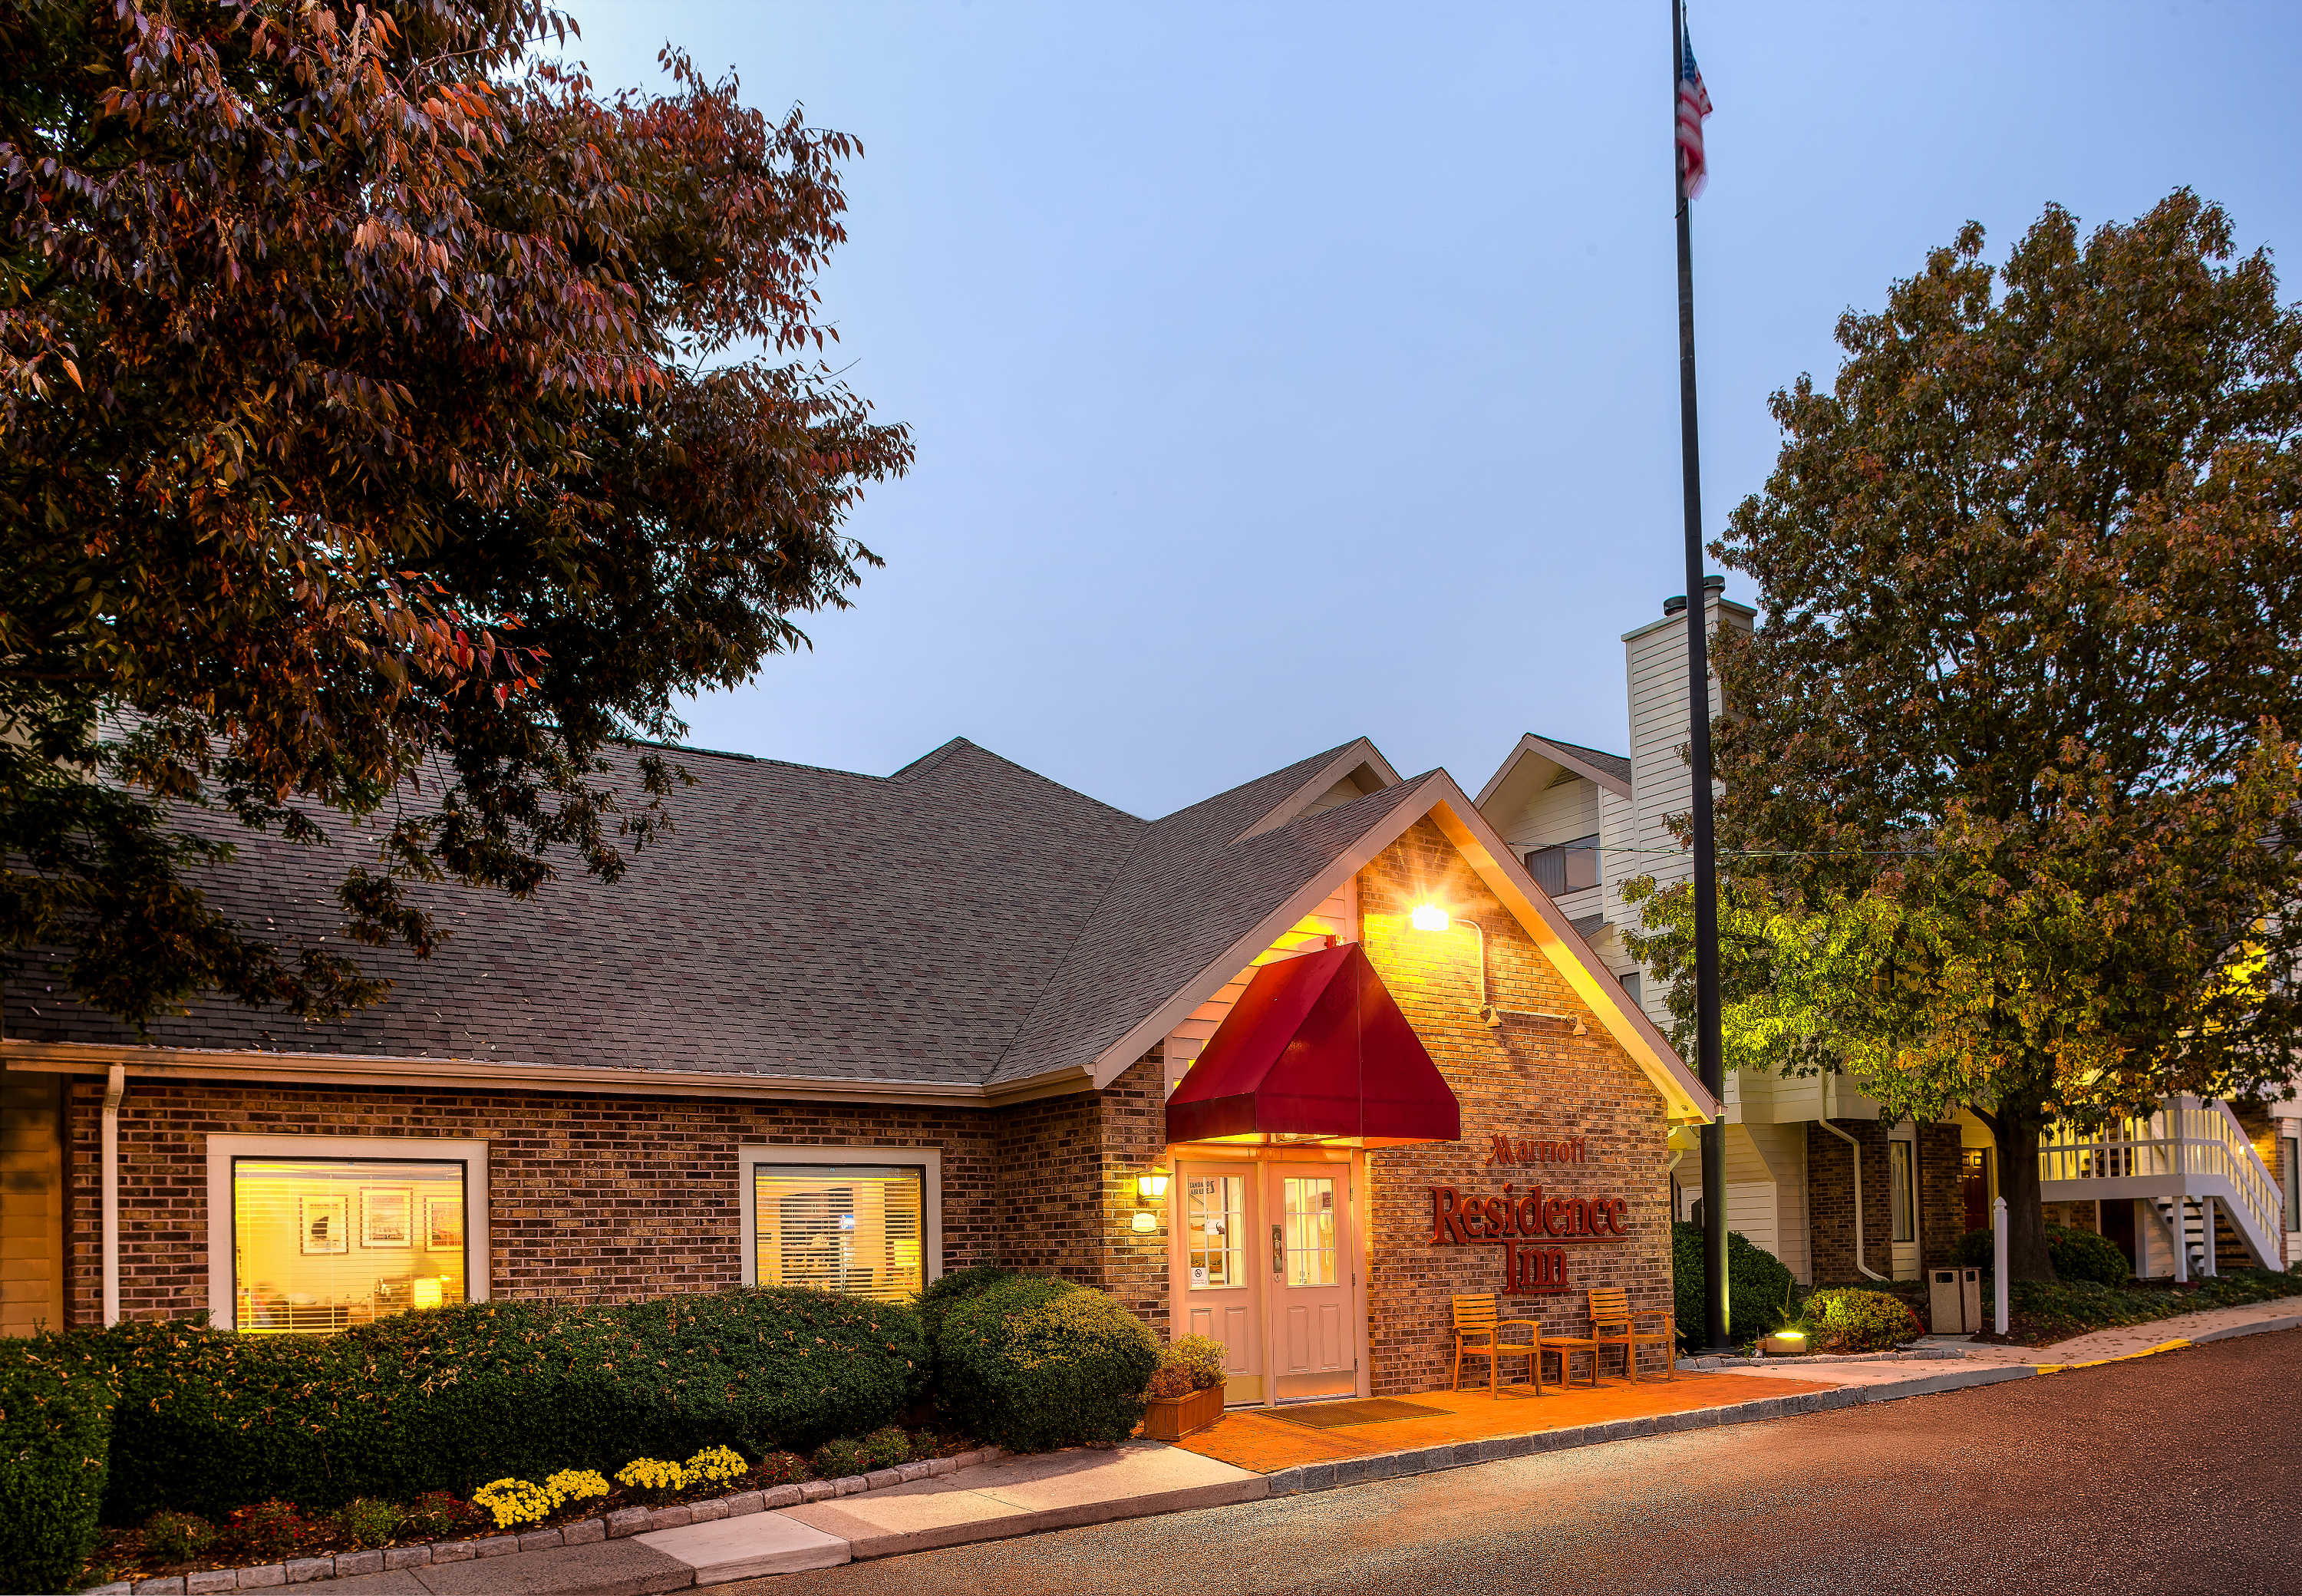 Hotels Near Shelton Ct